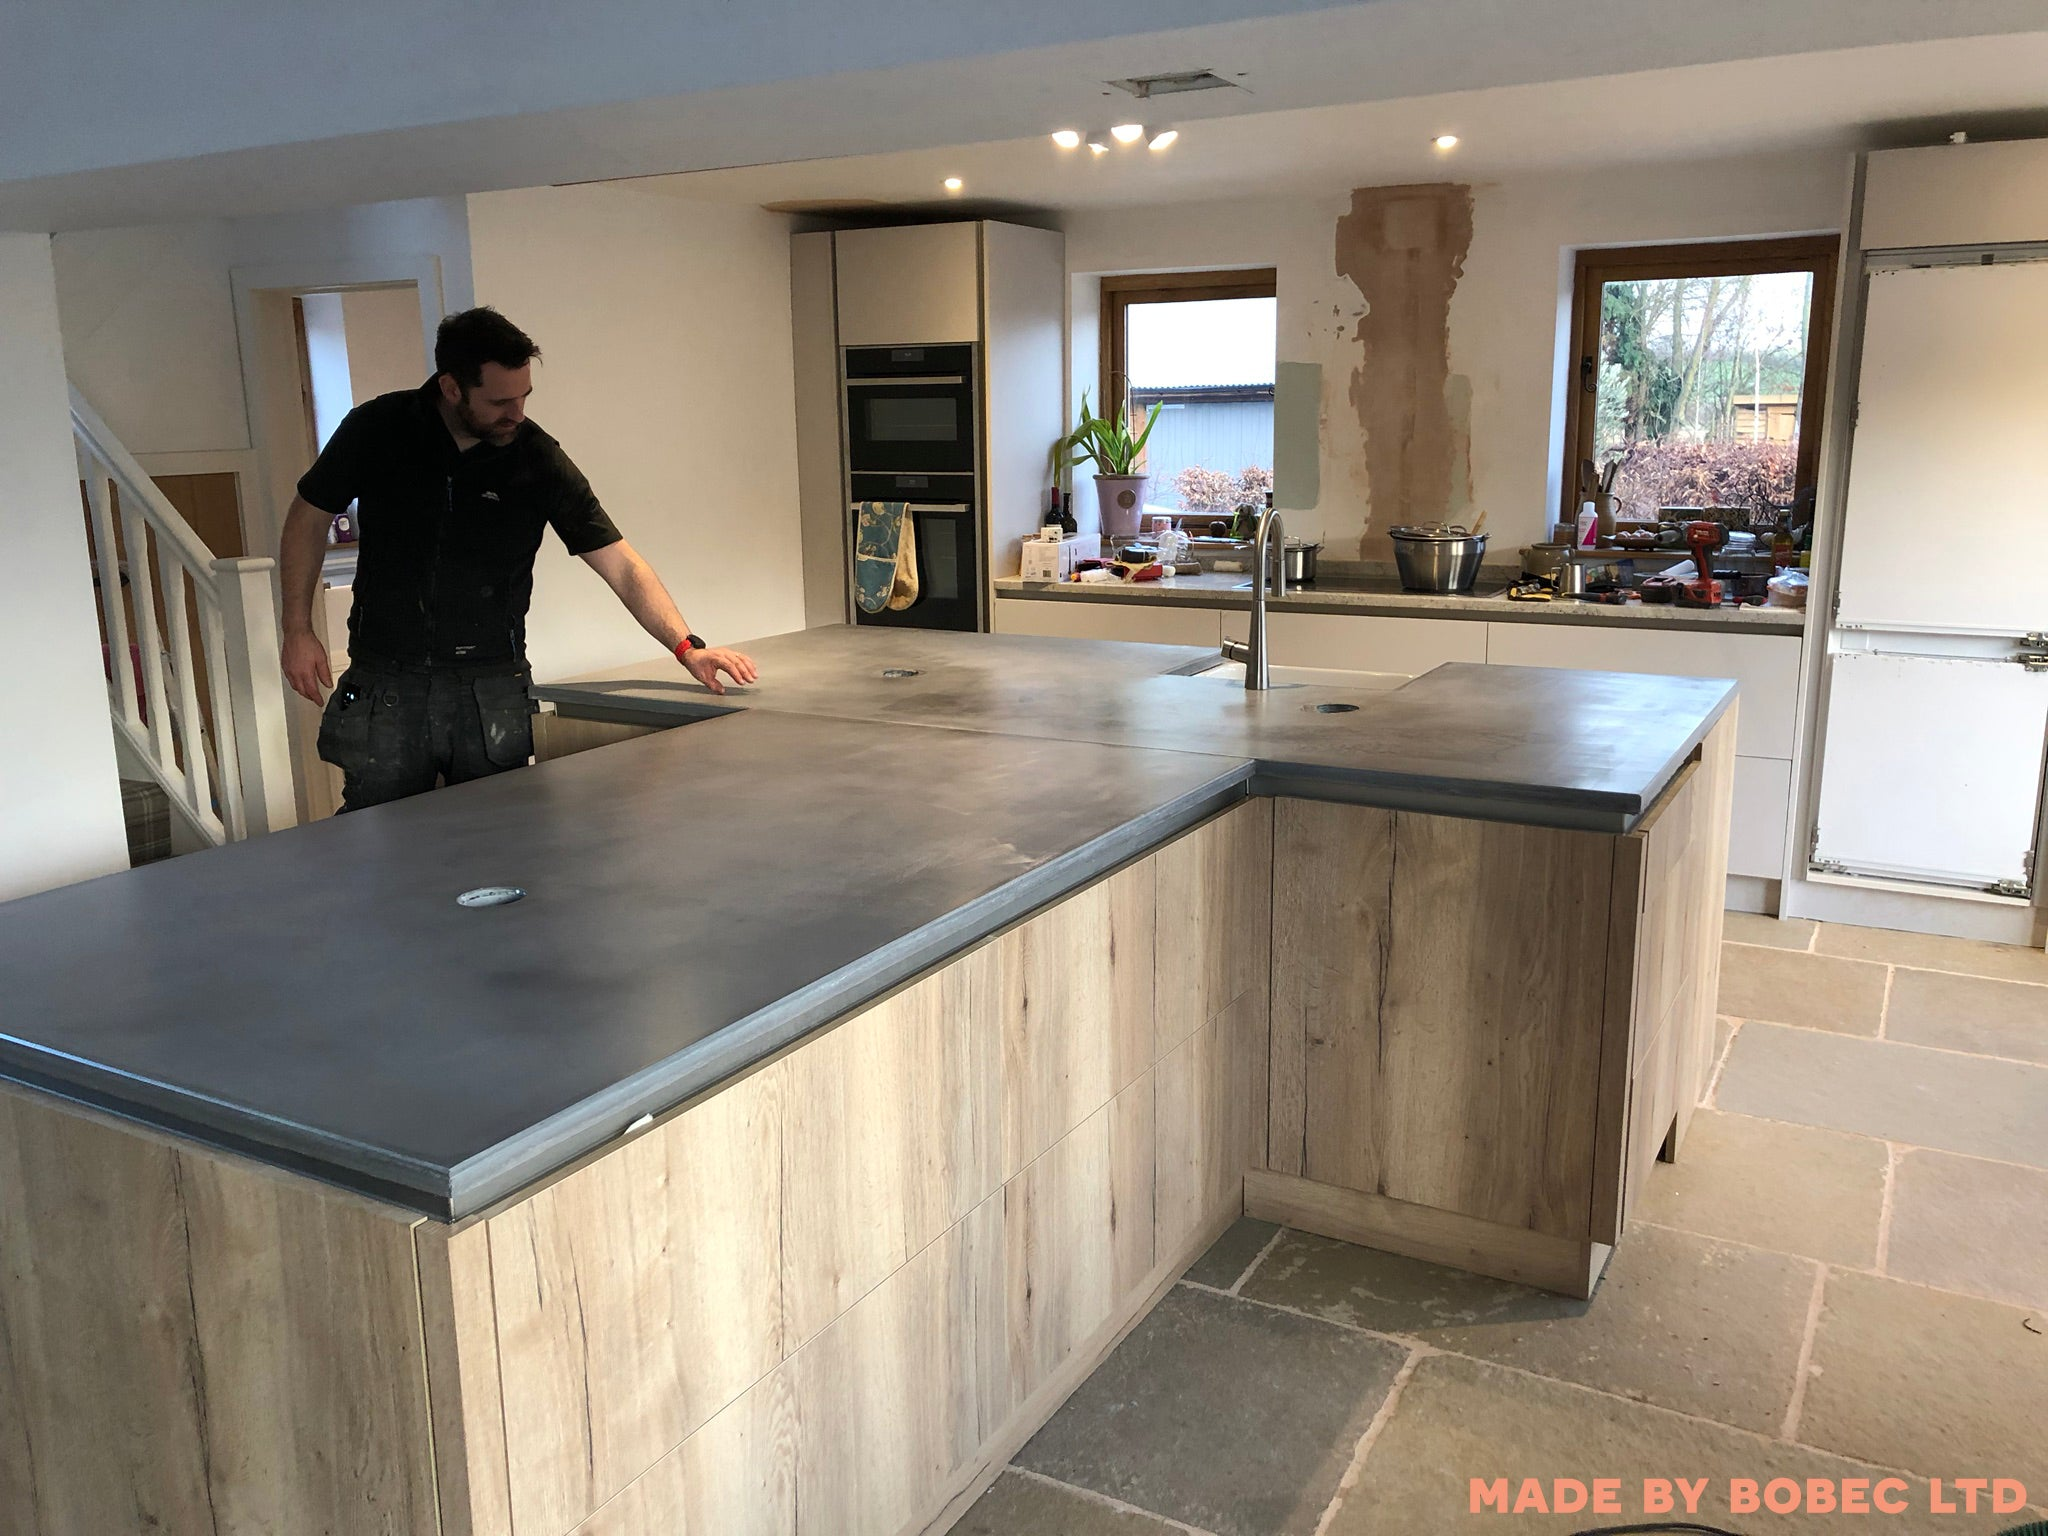 Concrete Worktop Premix Kit All In One Diy Concrete Gfrc Kit Concrete Lab